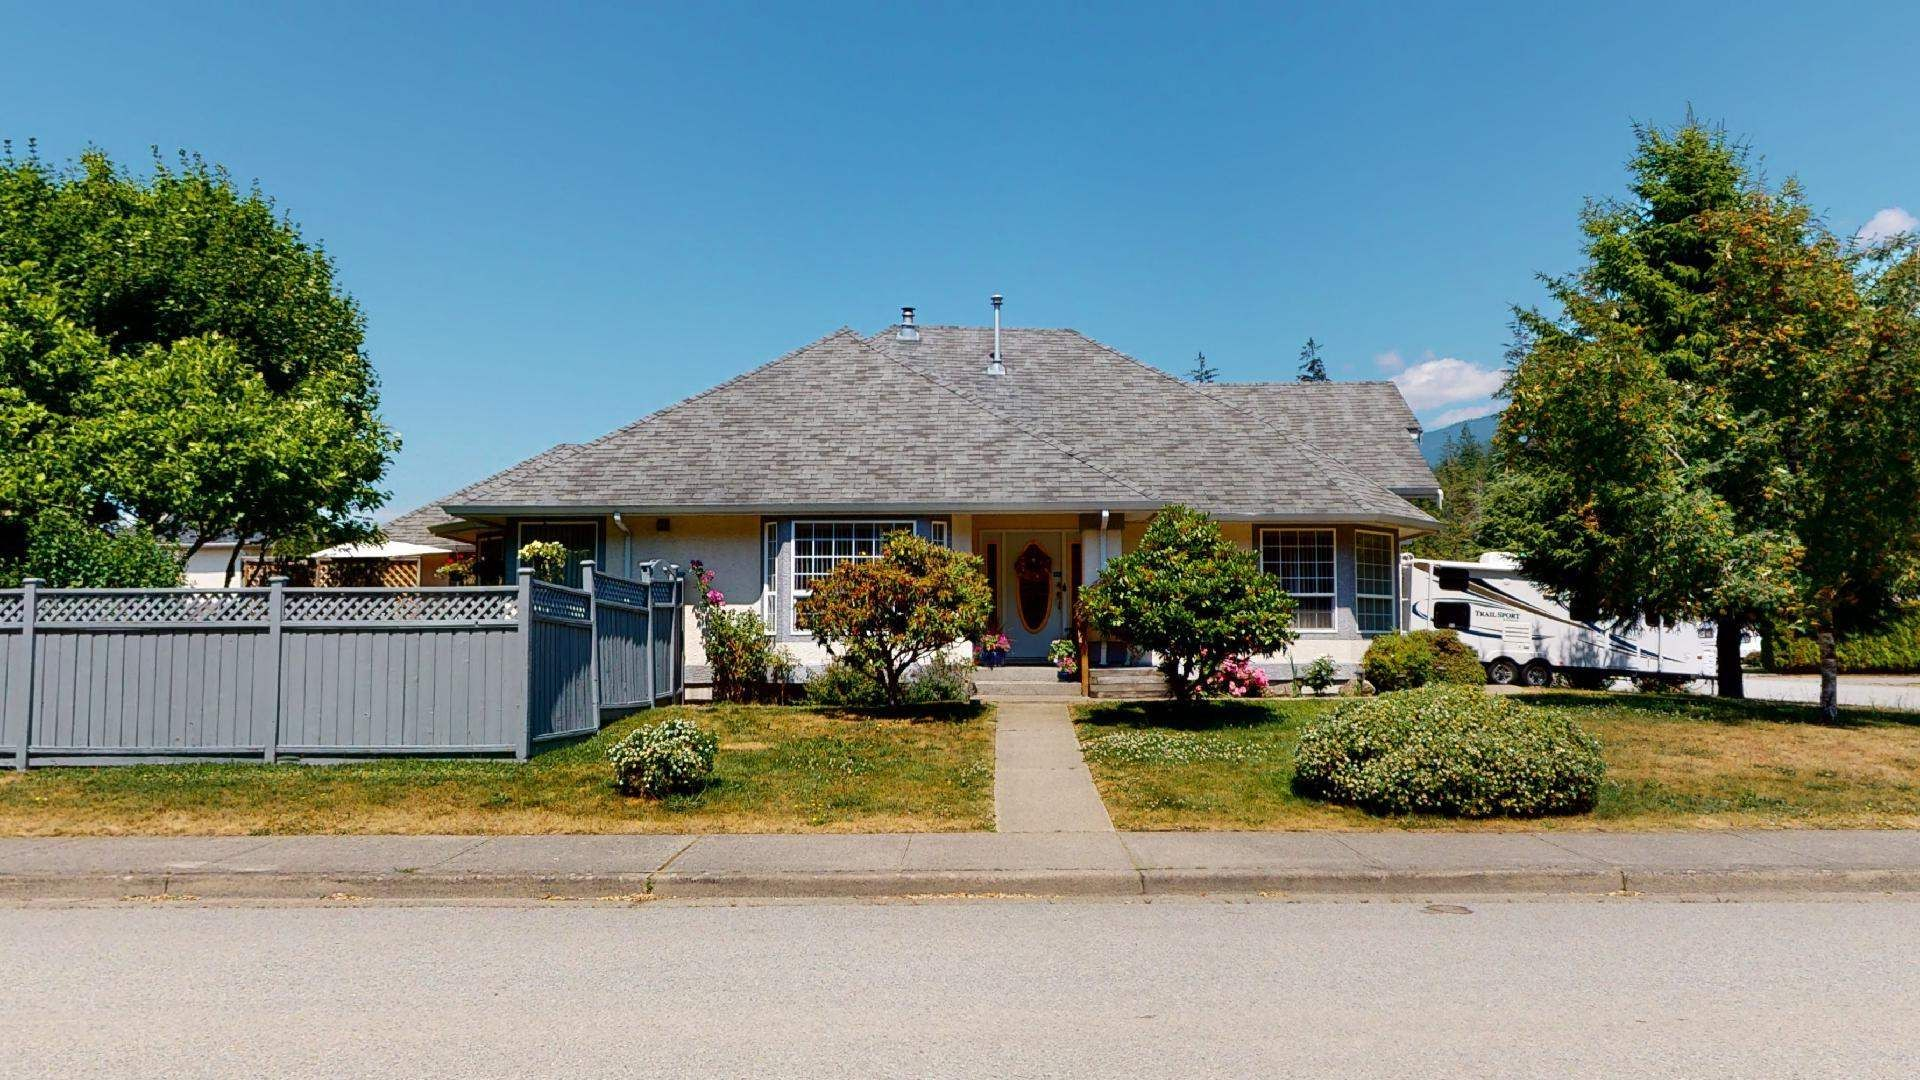 Main Photo: 1024 REGENCY PLACE in Squamish: Tantalus House for sale : MLS®# R2598823